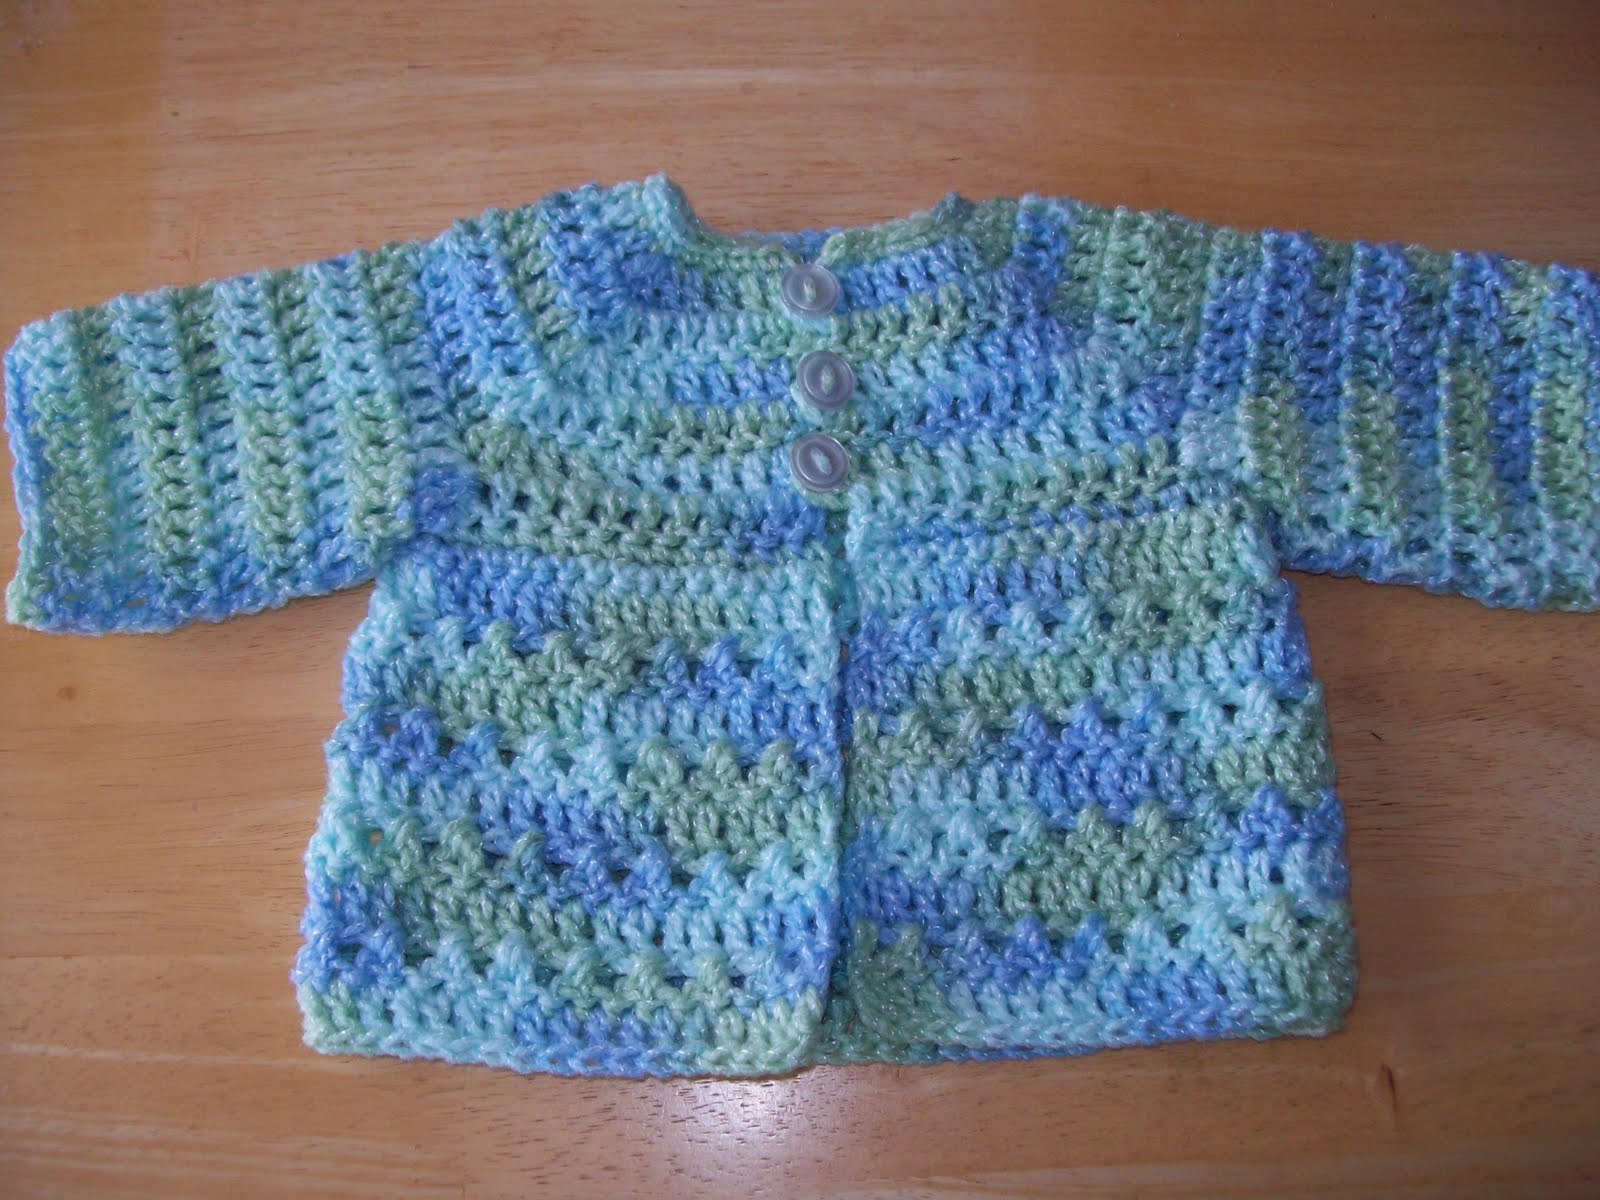 Free Crochet Patterns For Easy Baby Sweaters : Easy Baby Crochet Sweaters - Long Sweater Jacket